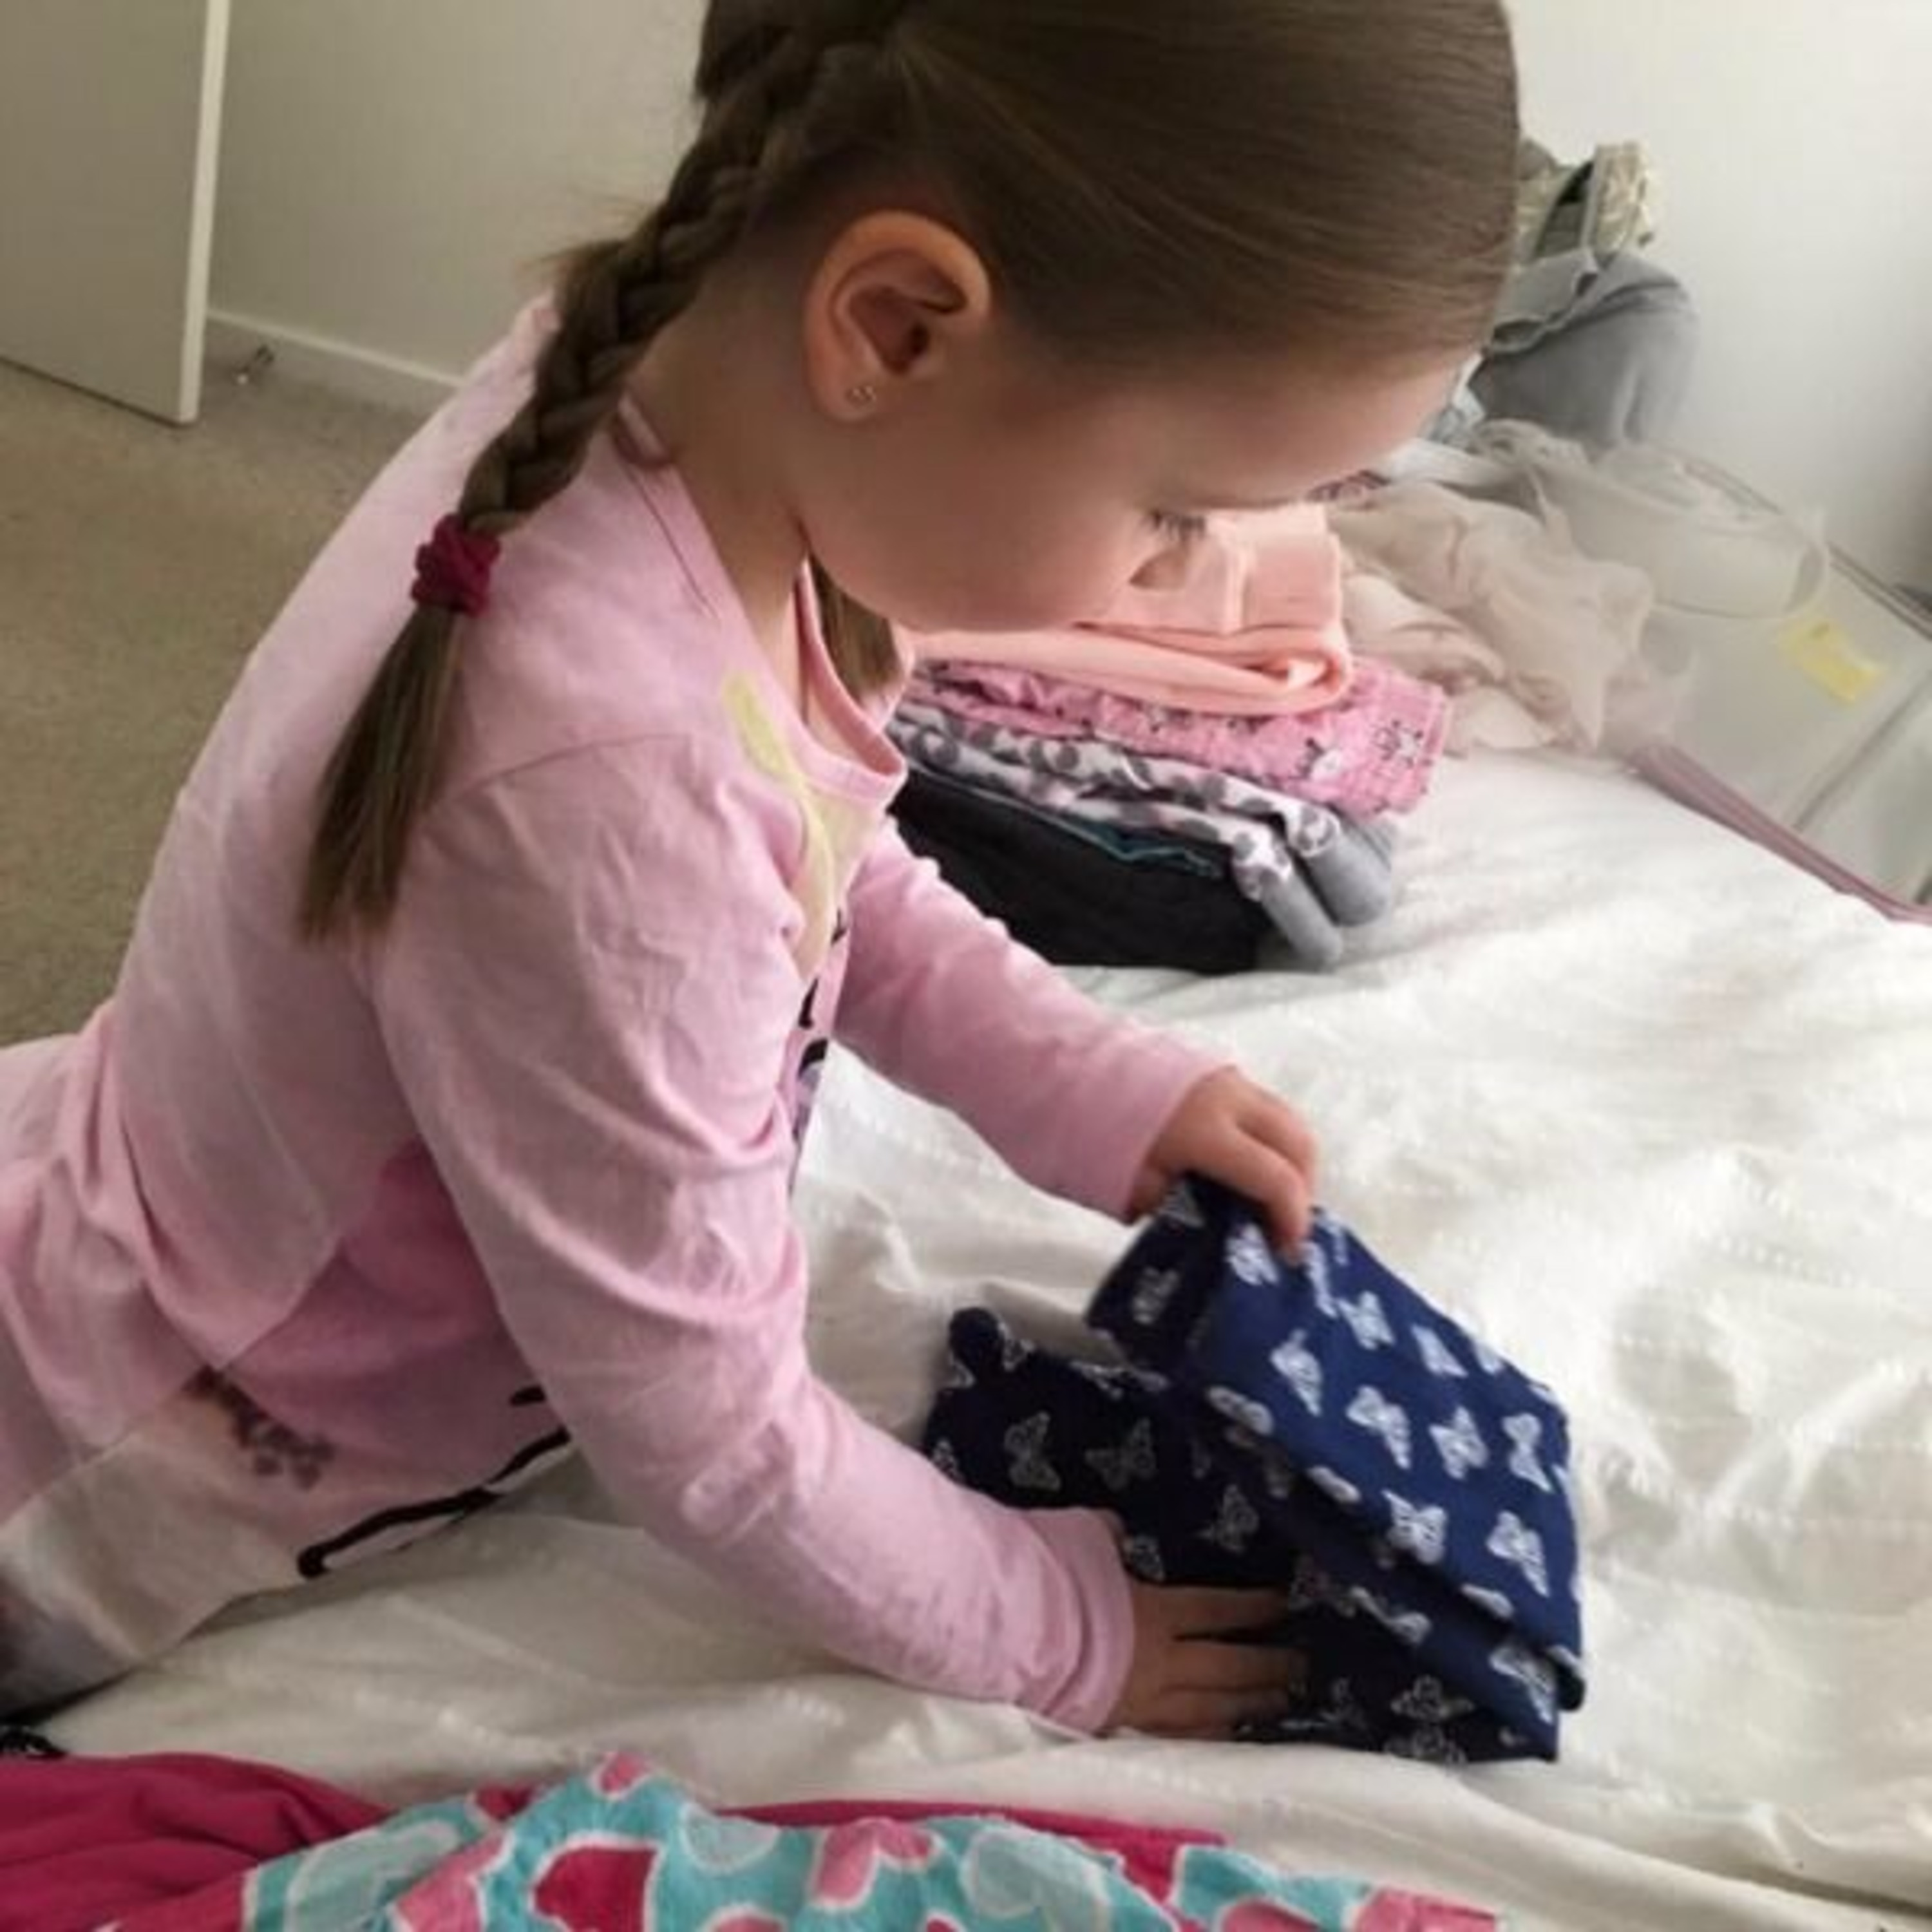 How to encourage young children to help around the house (folding laundry)